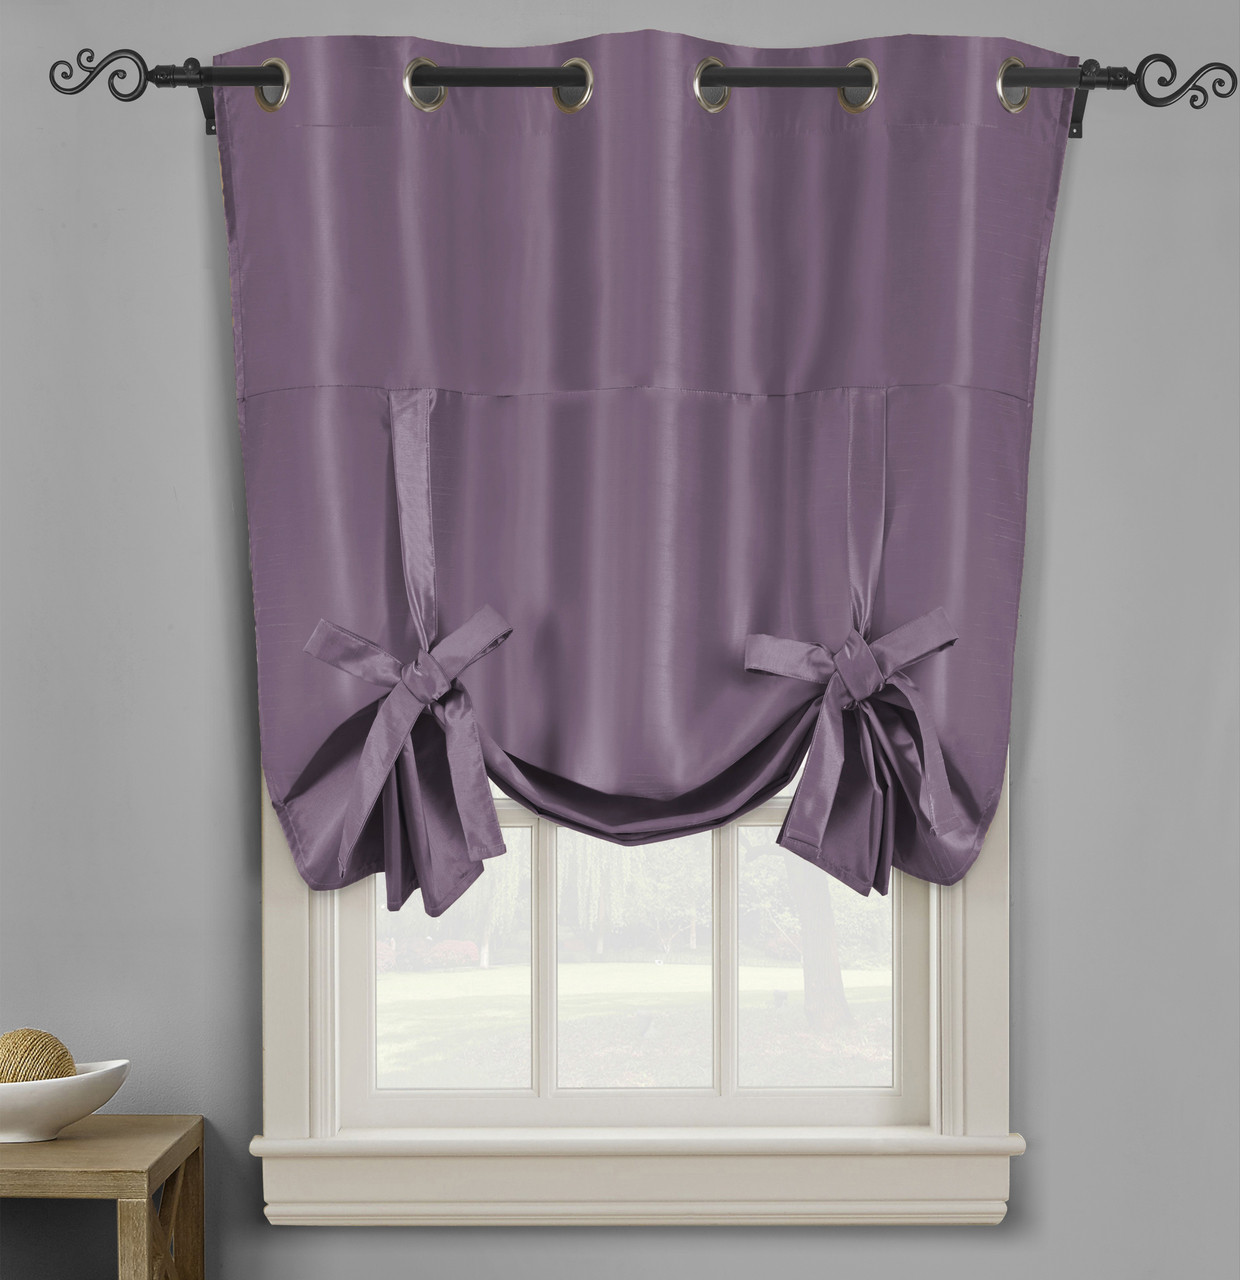 Soho Triple Pass Thermal Insulated Blackout Curtain Top